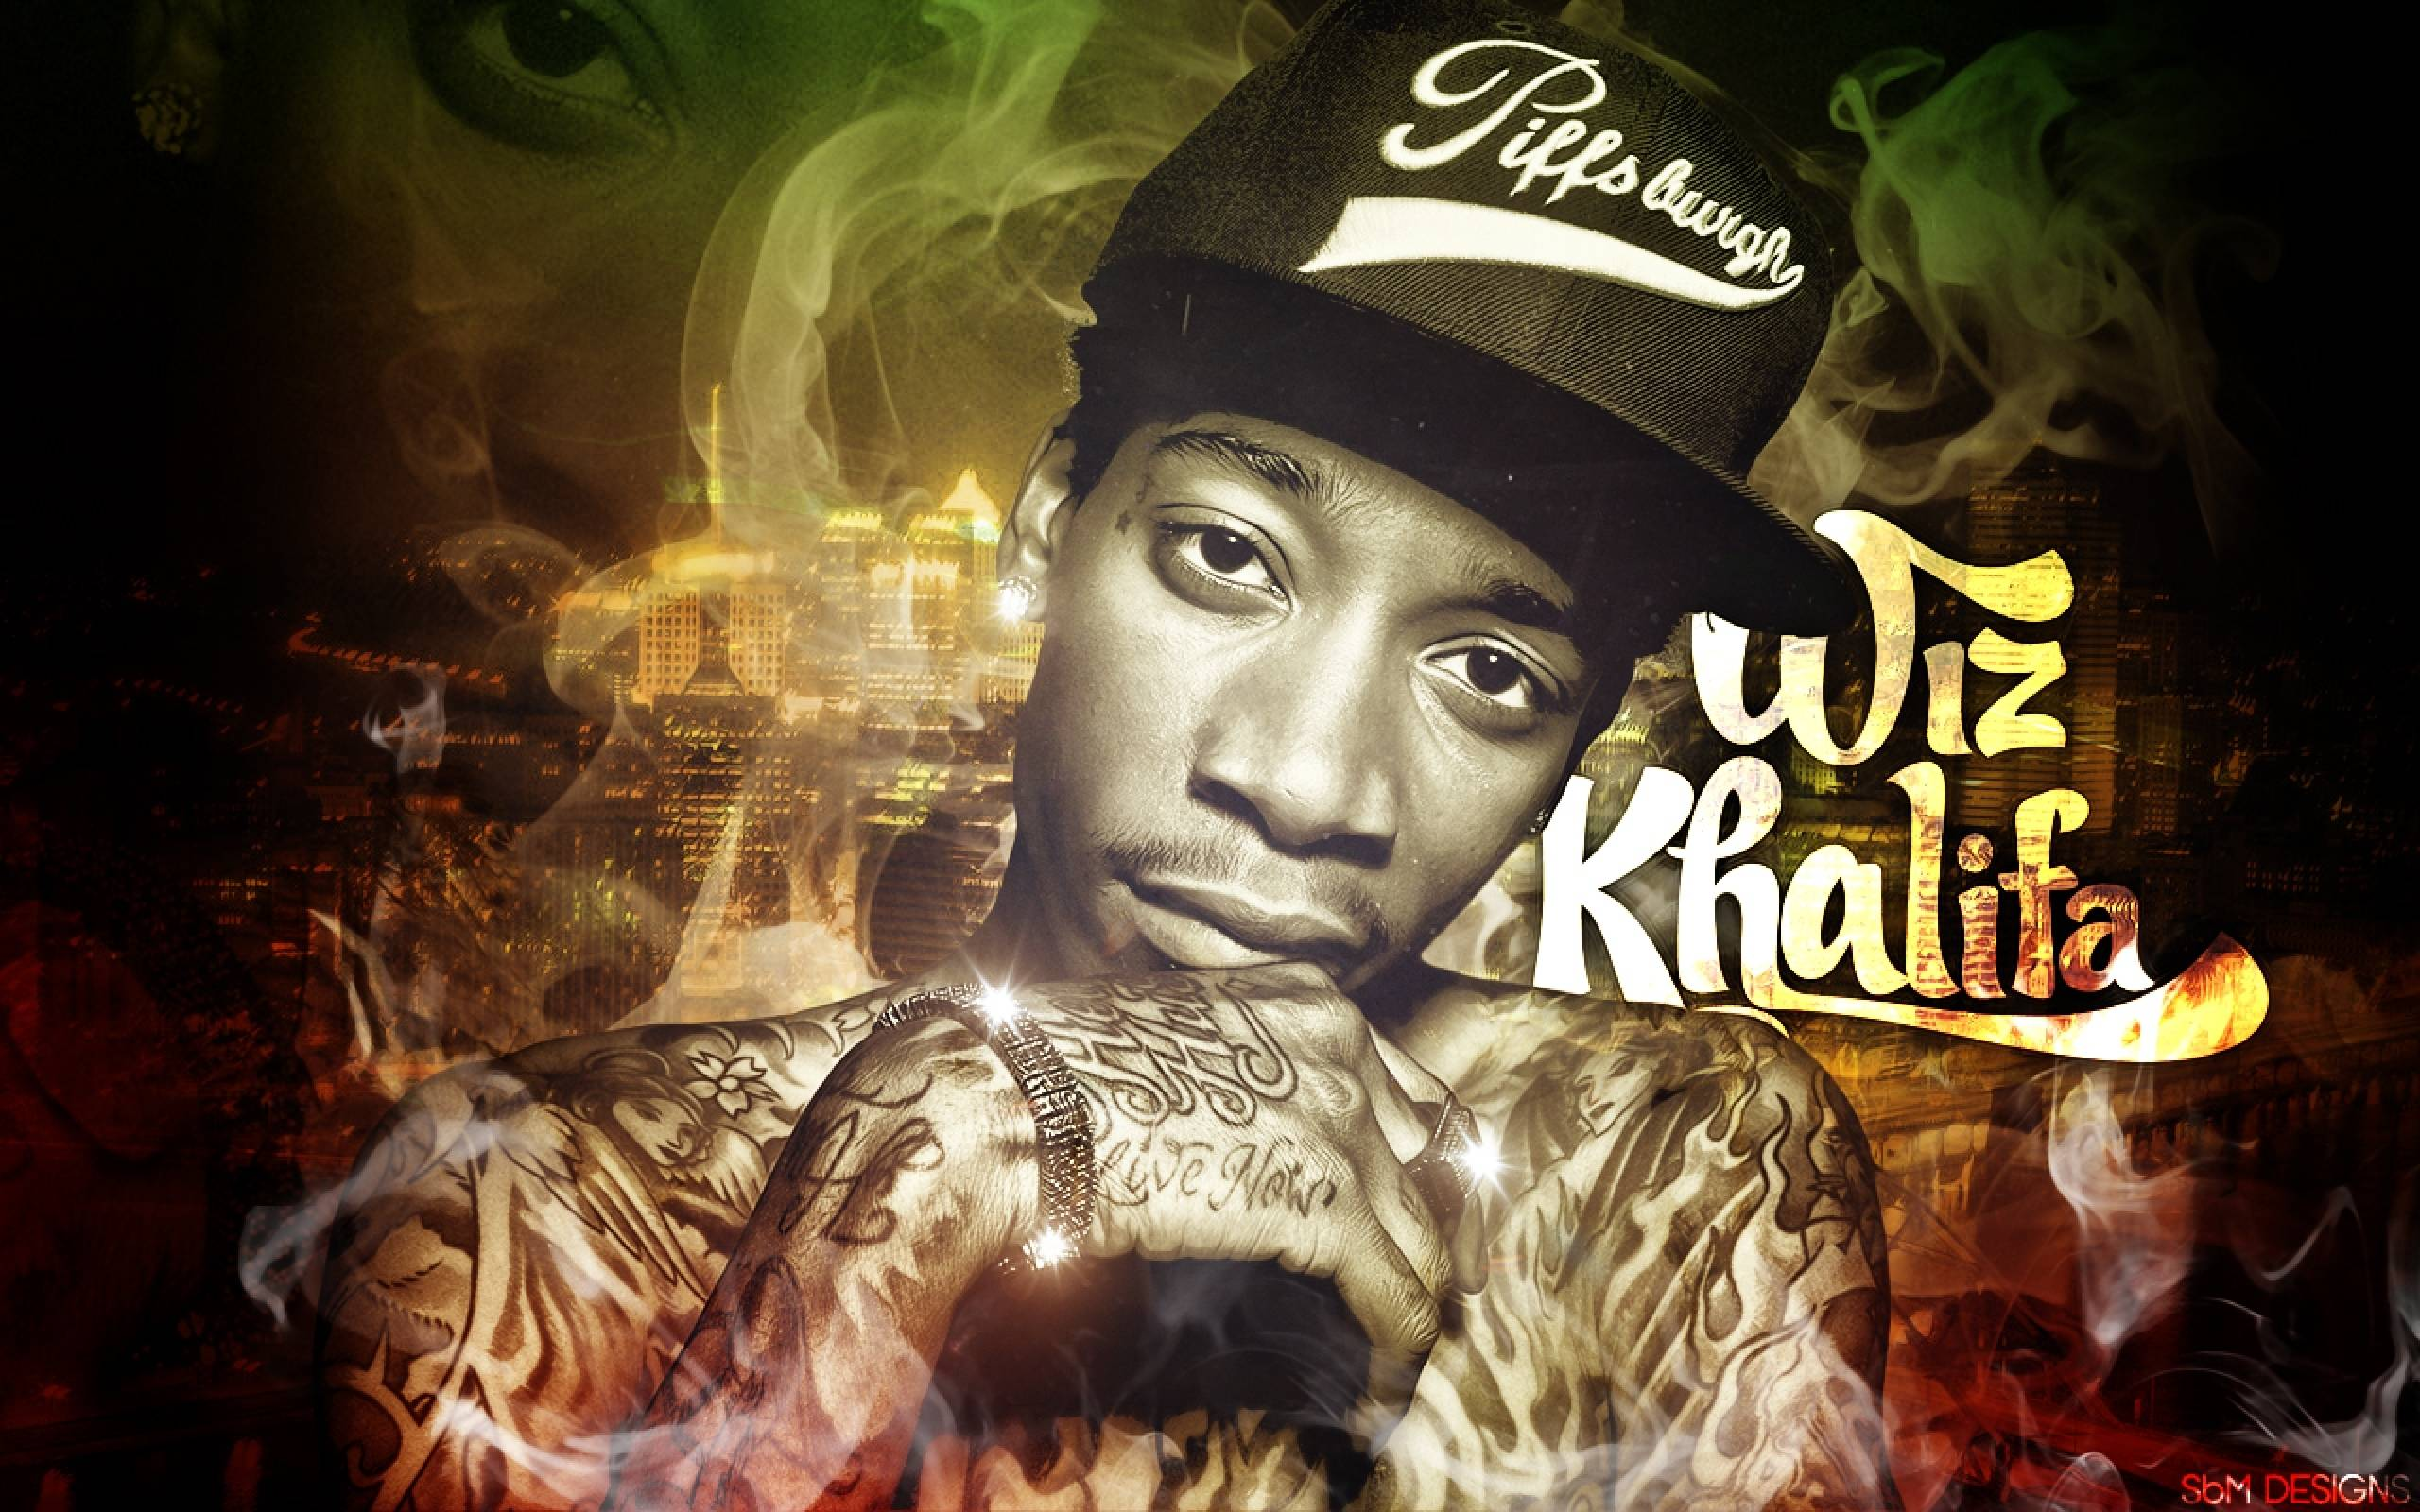 Wiz Khalifa Backgrounds - Wallpaper Cave